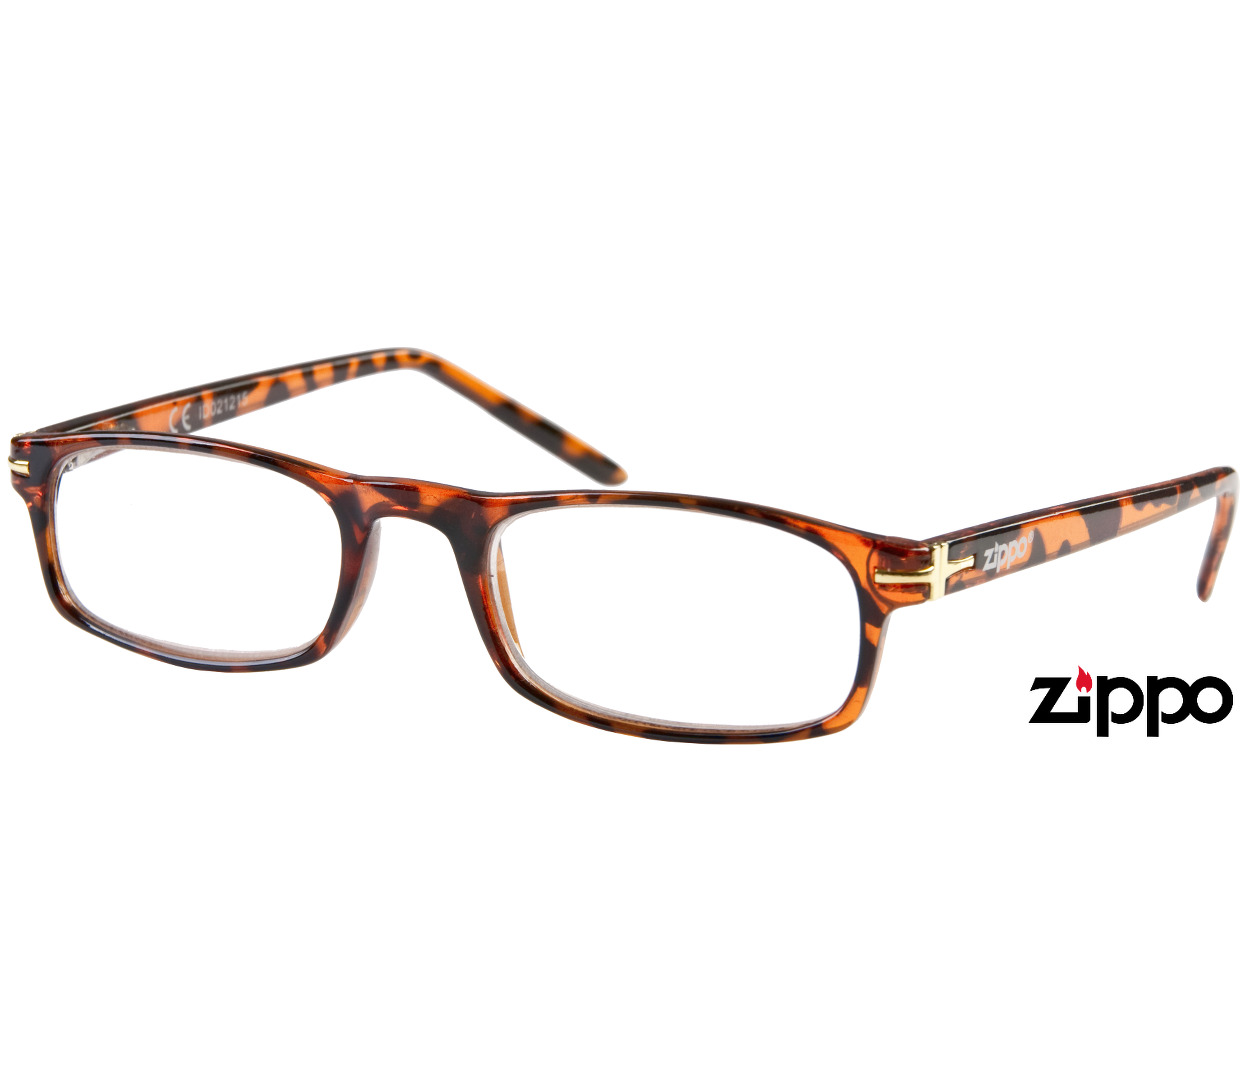 Main Image (Angle) - London (Tortoiseshell) Classic Reading Glasses